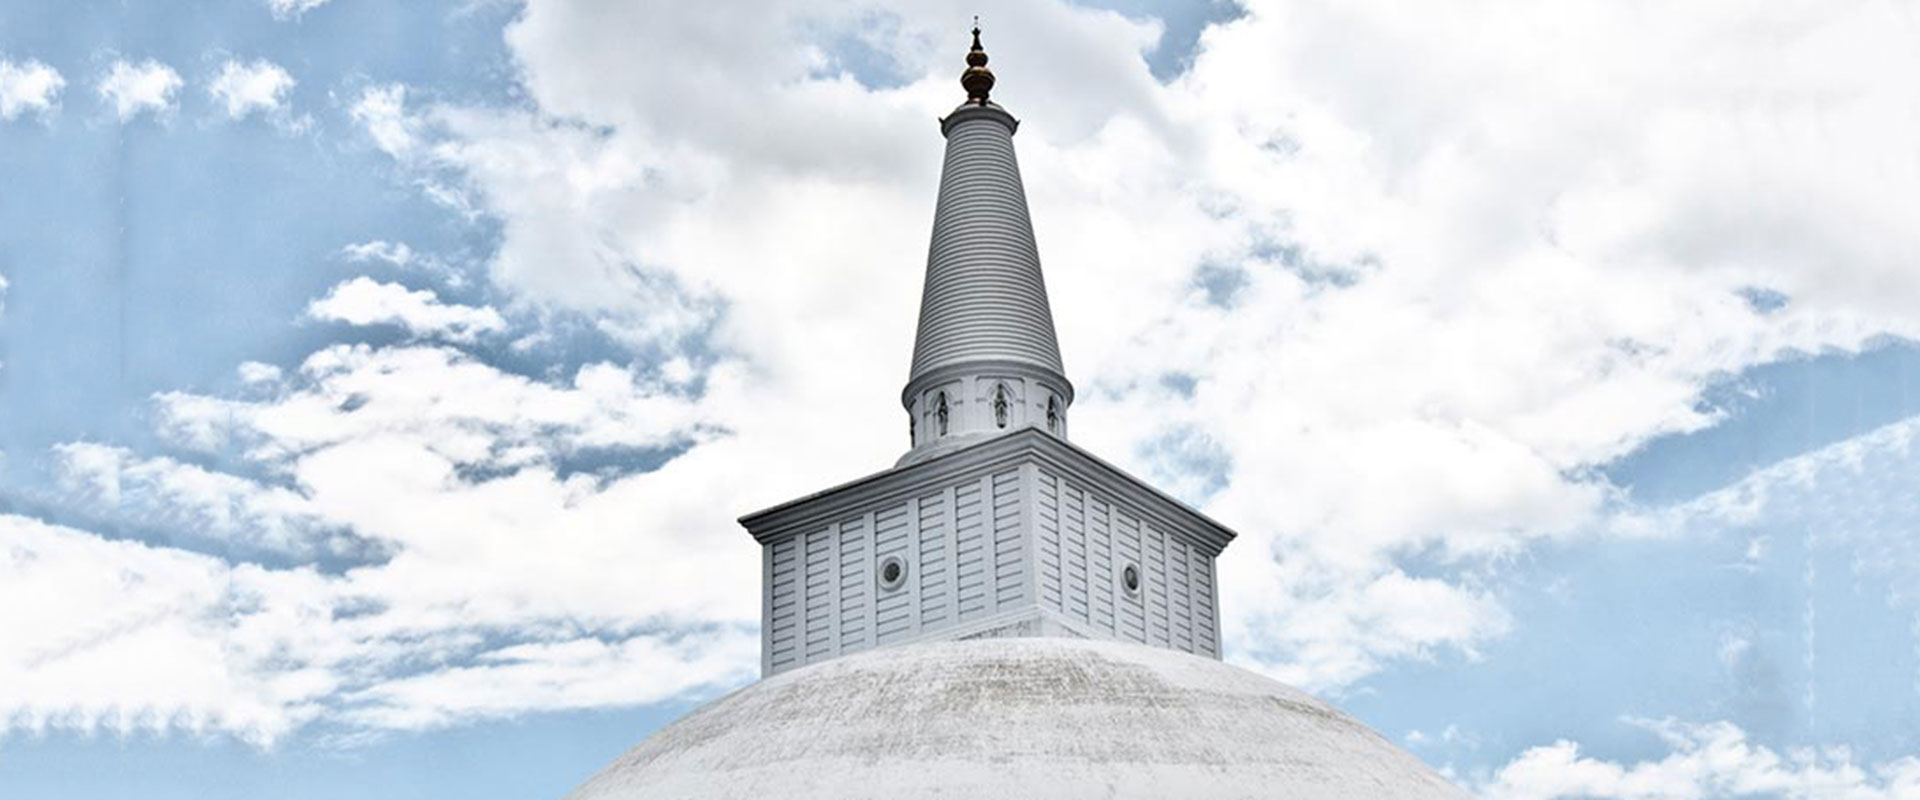 Temple Stupa in Anuradhapura with a cloudy sky